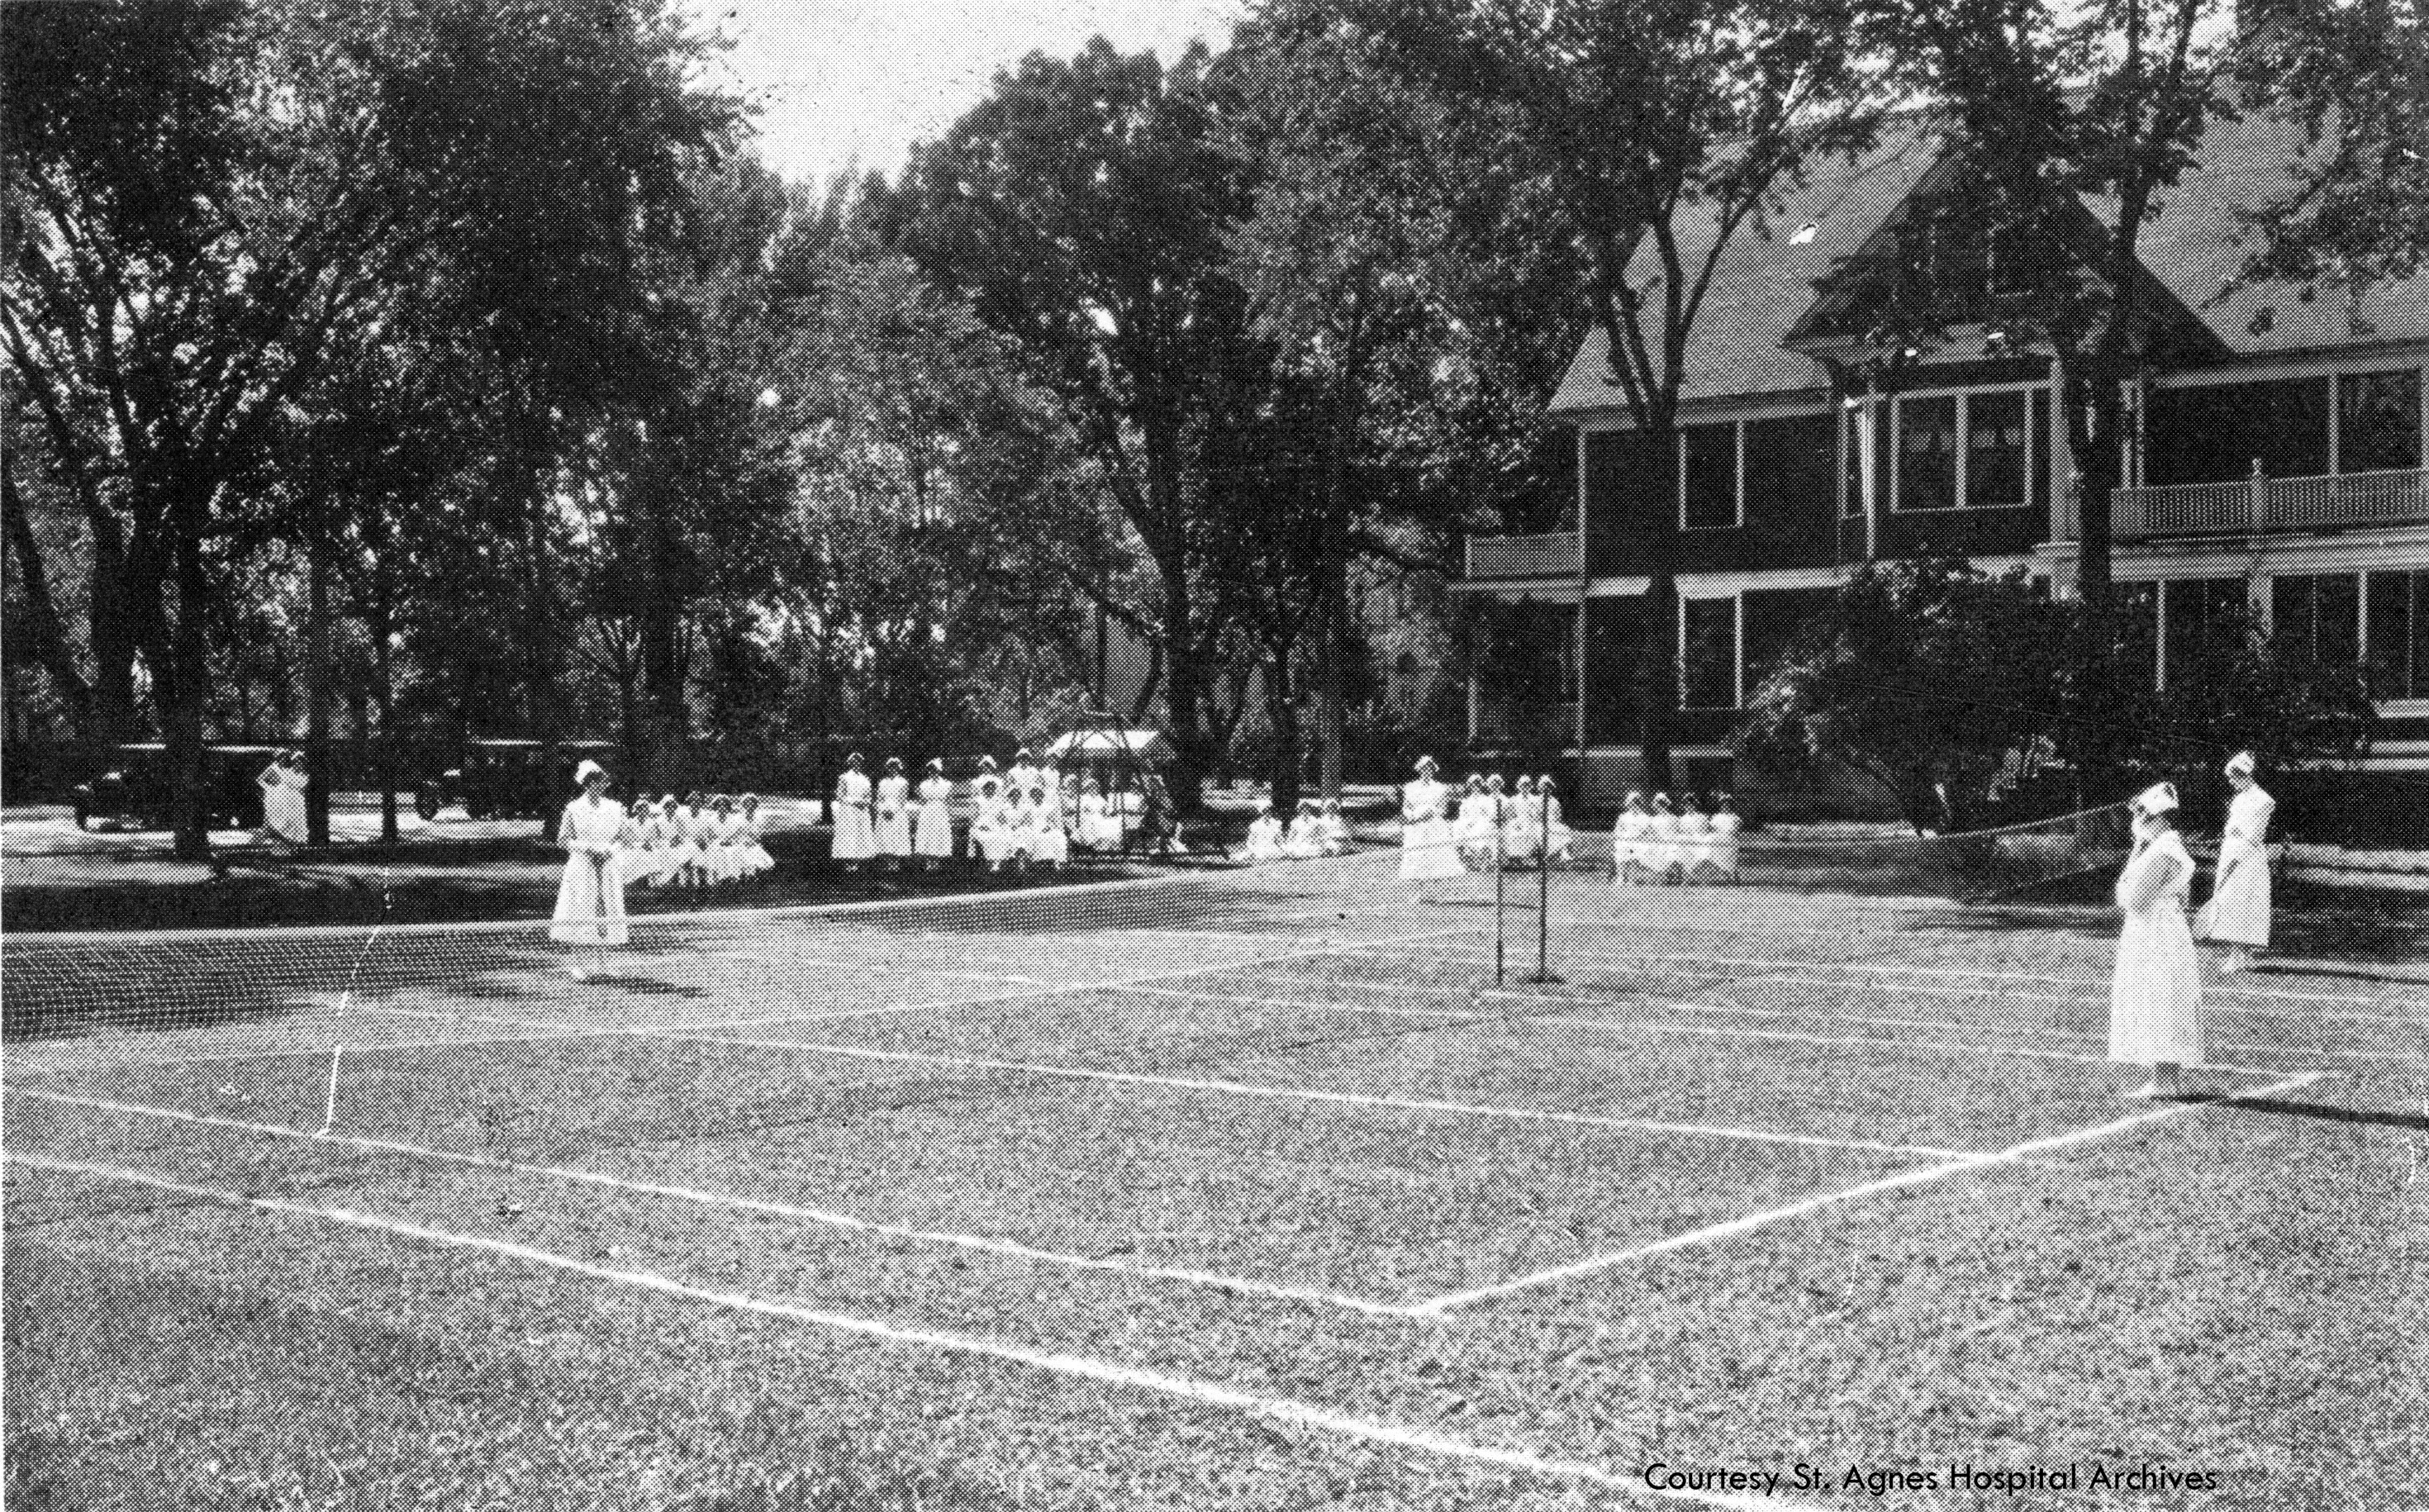 Student nurses play tennis during some recreation time, c. 1925.